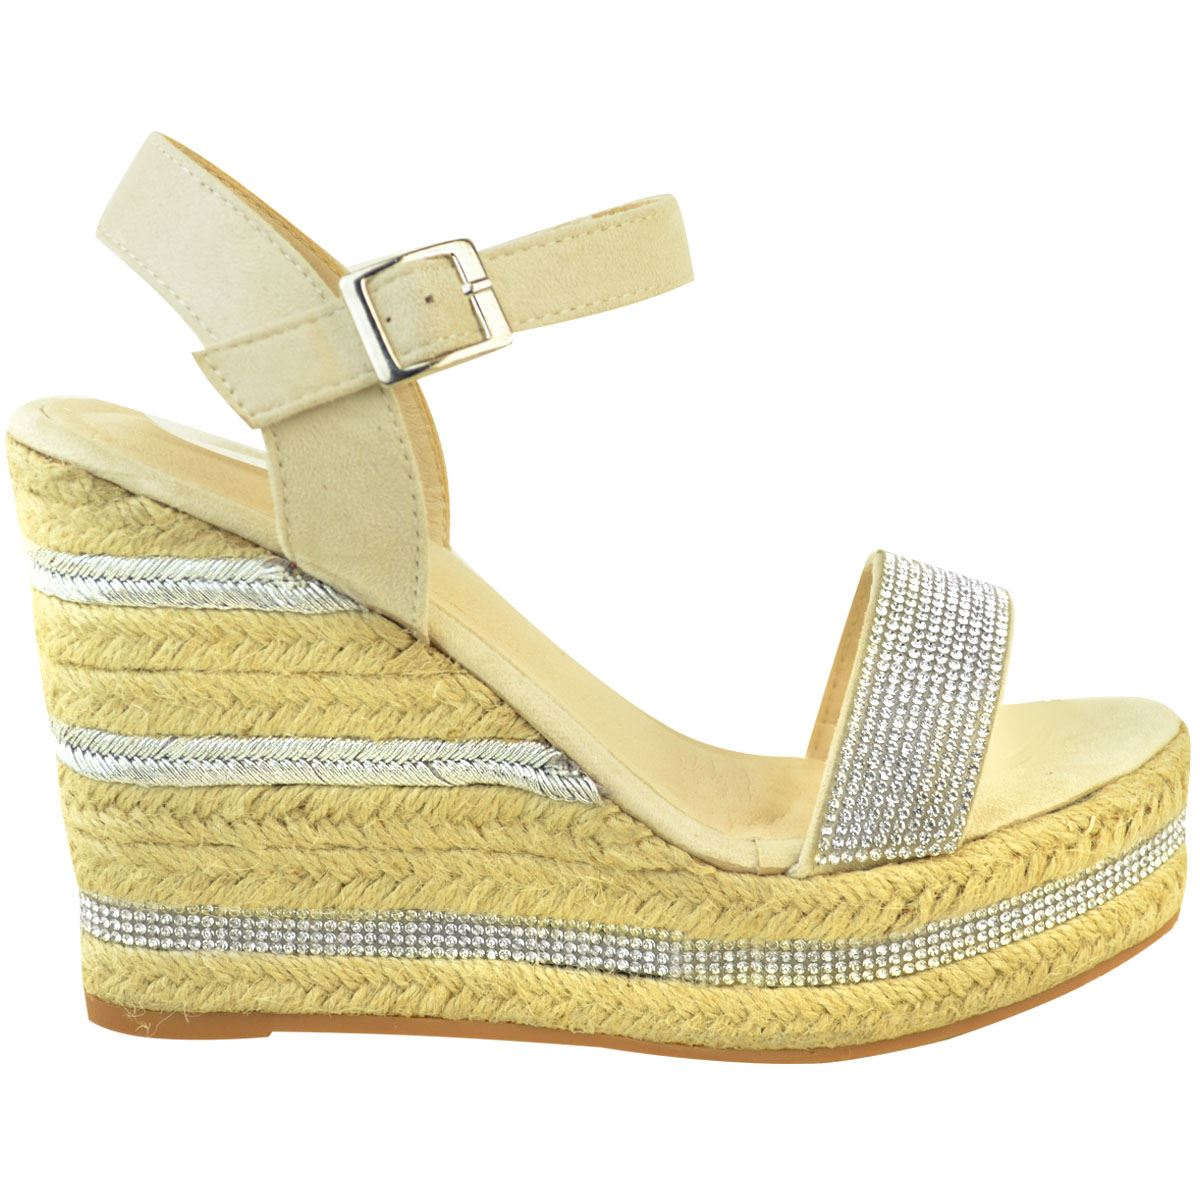 Womens-Ladies-Wedged-High-Heel-Sandals-Raffia-Diamante-Party-Shoes-Summer-Size thumbnail 4